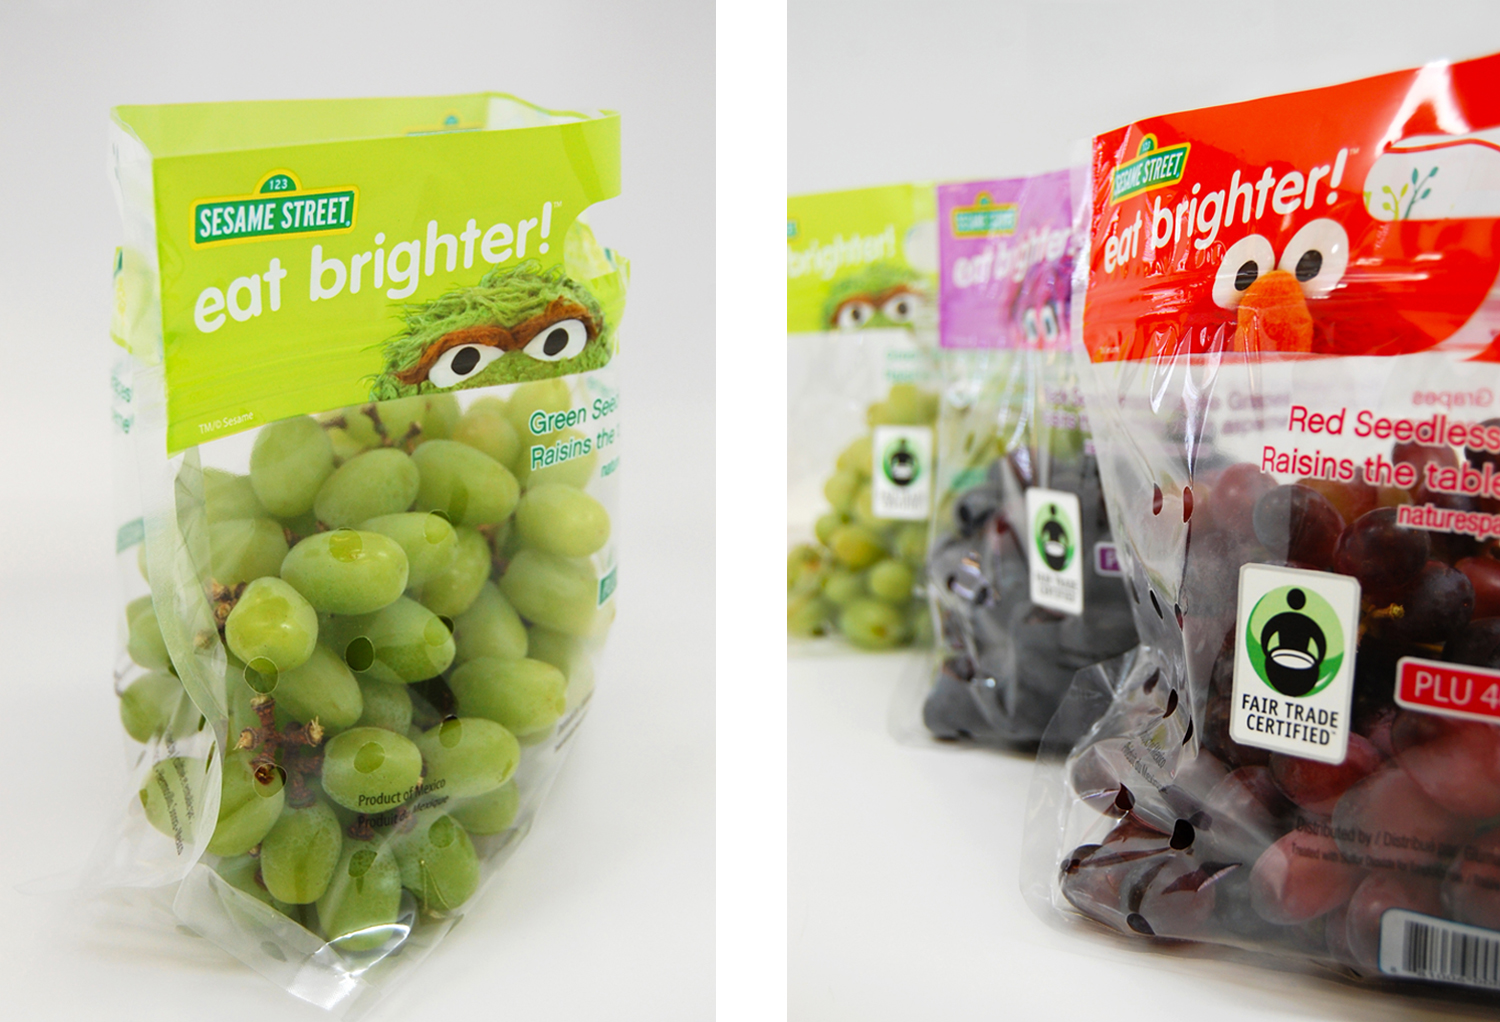 Nature's Partner grape bags  .    Click here to download high resolution image of the  Green Grape Bag  and  All Three Fair Trade Certified Bags.